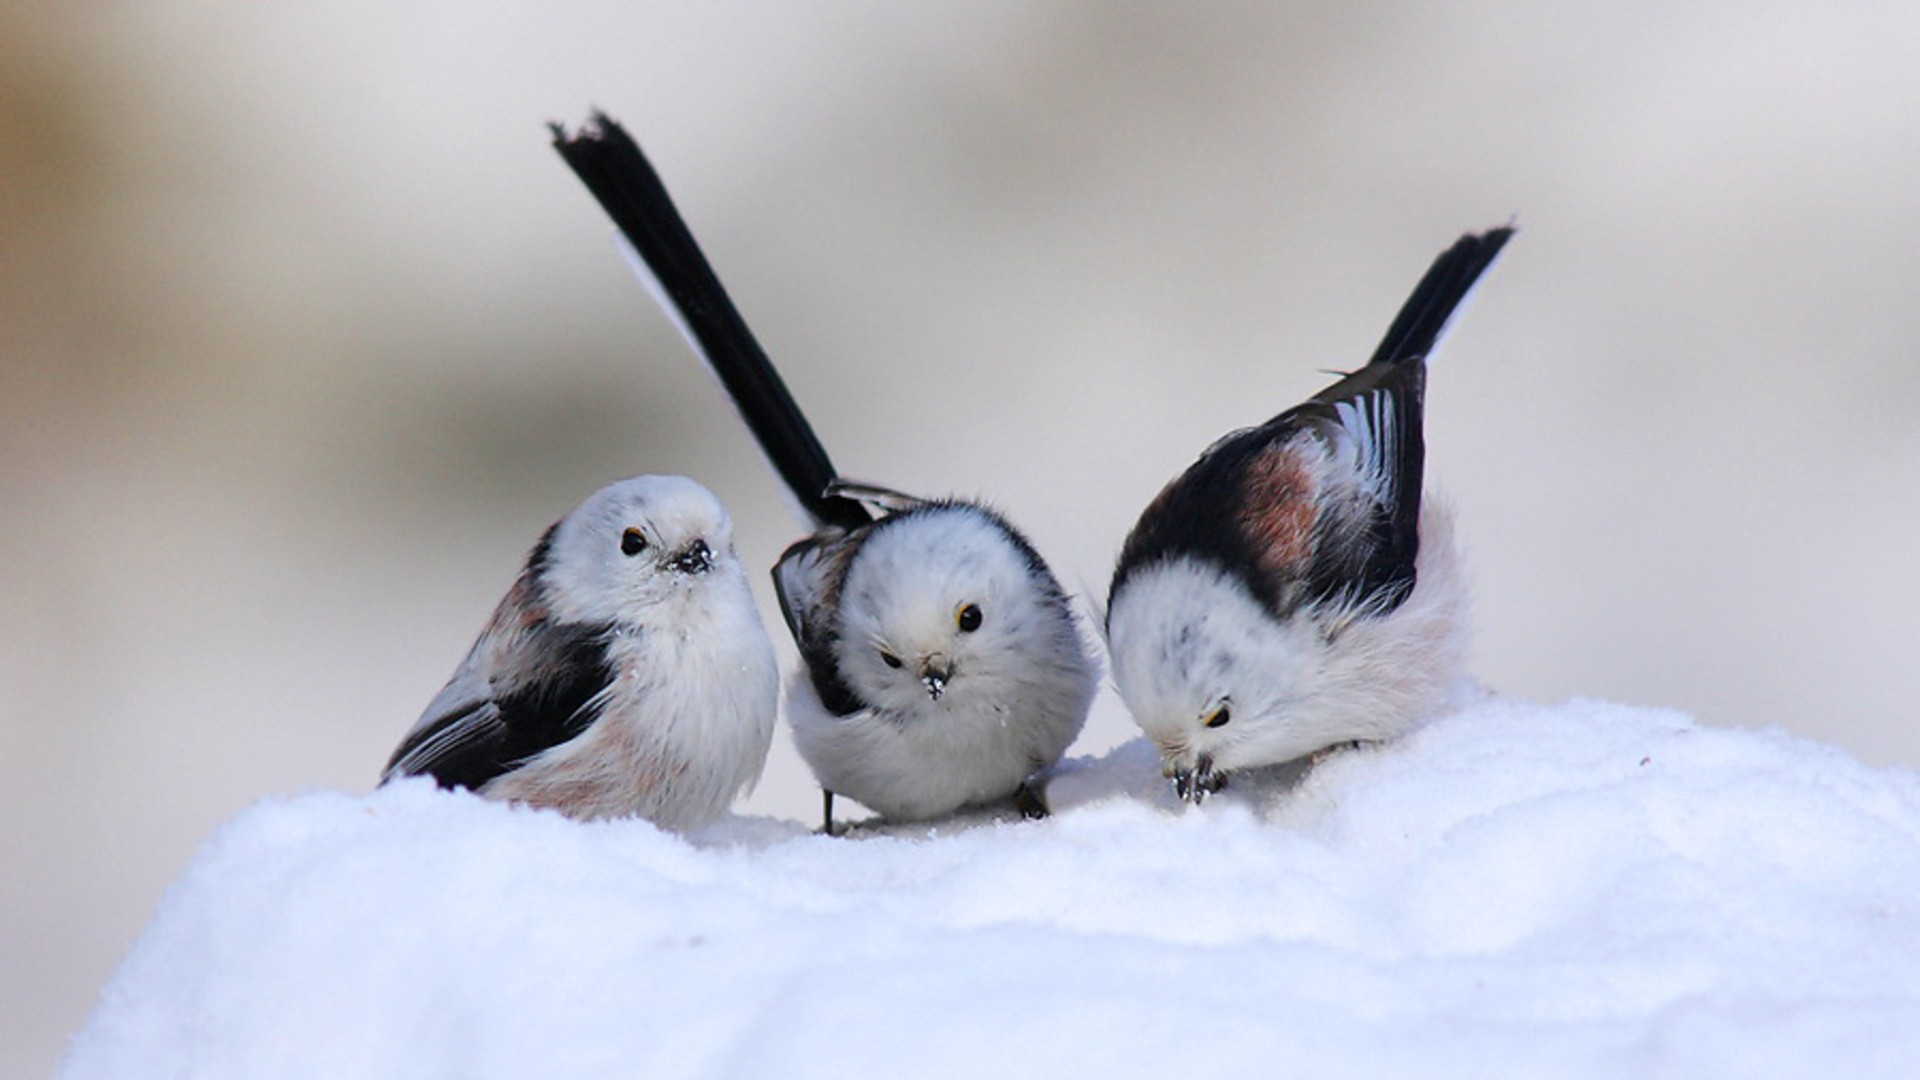 snow wallpaper birds